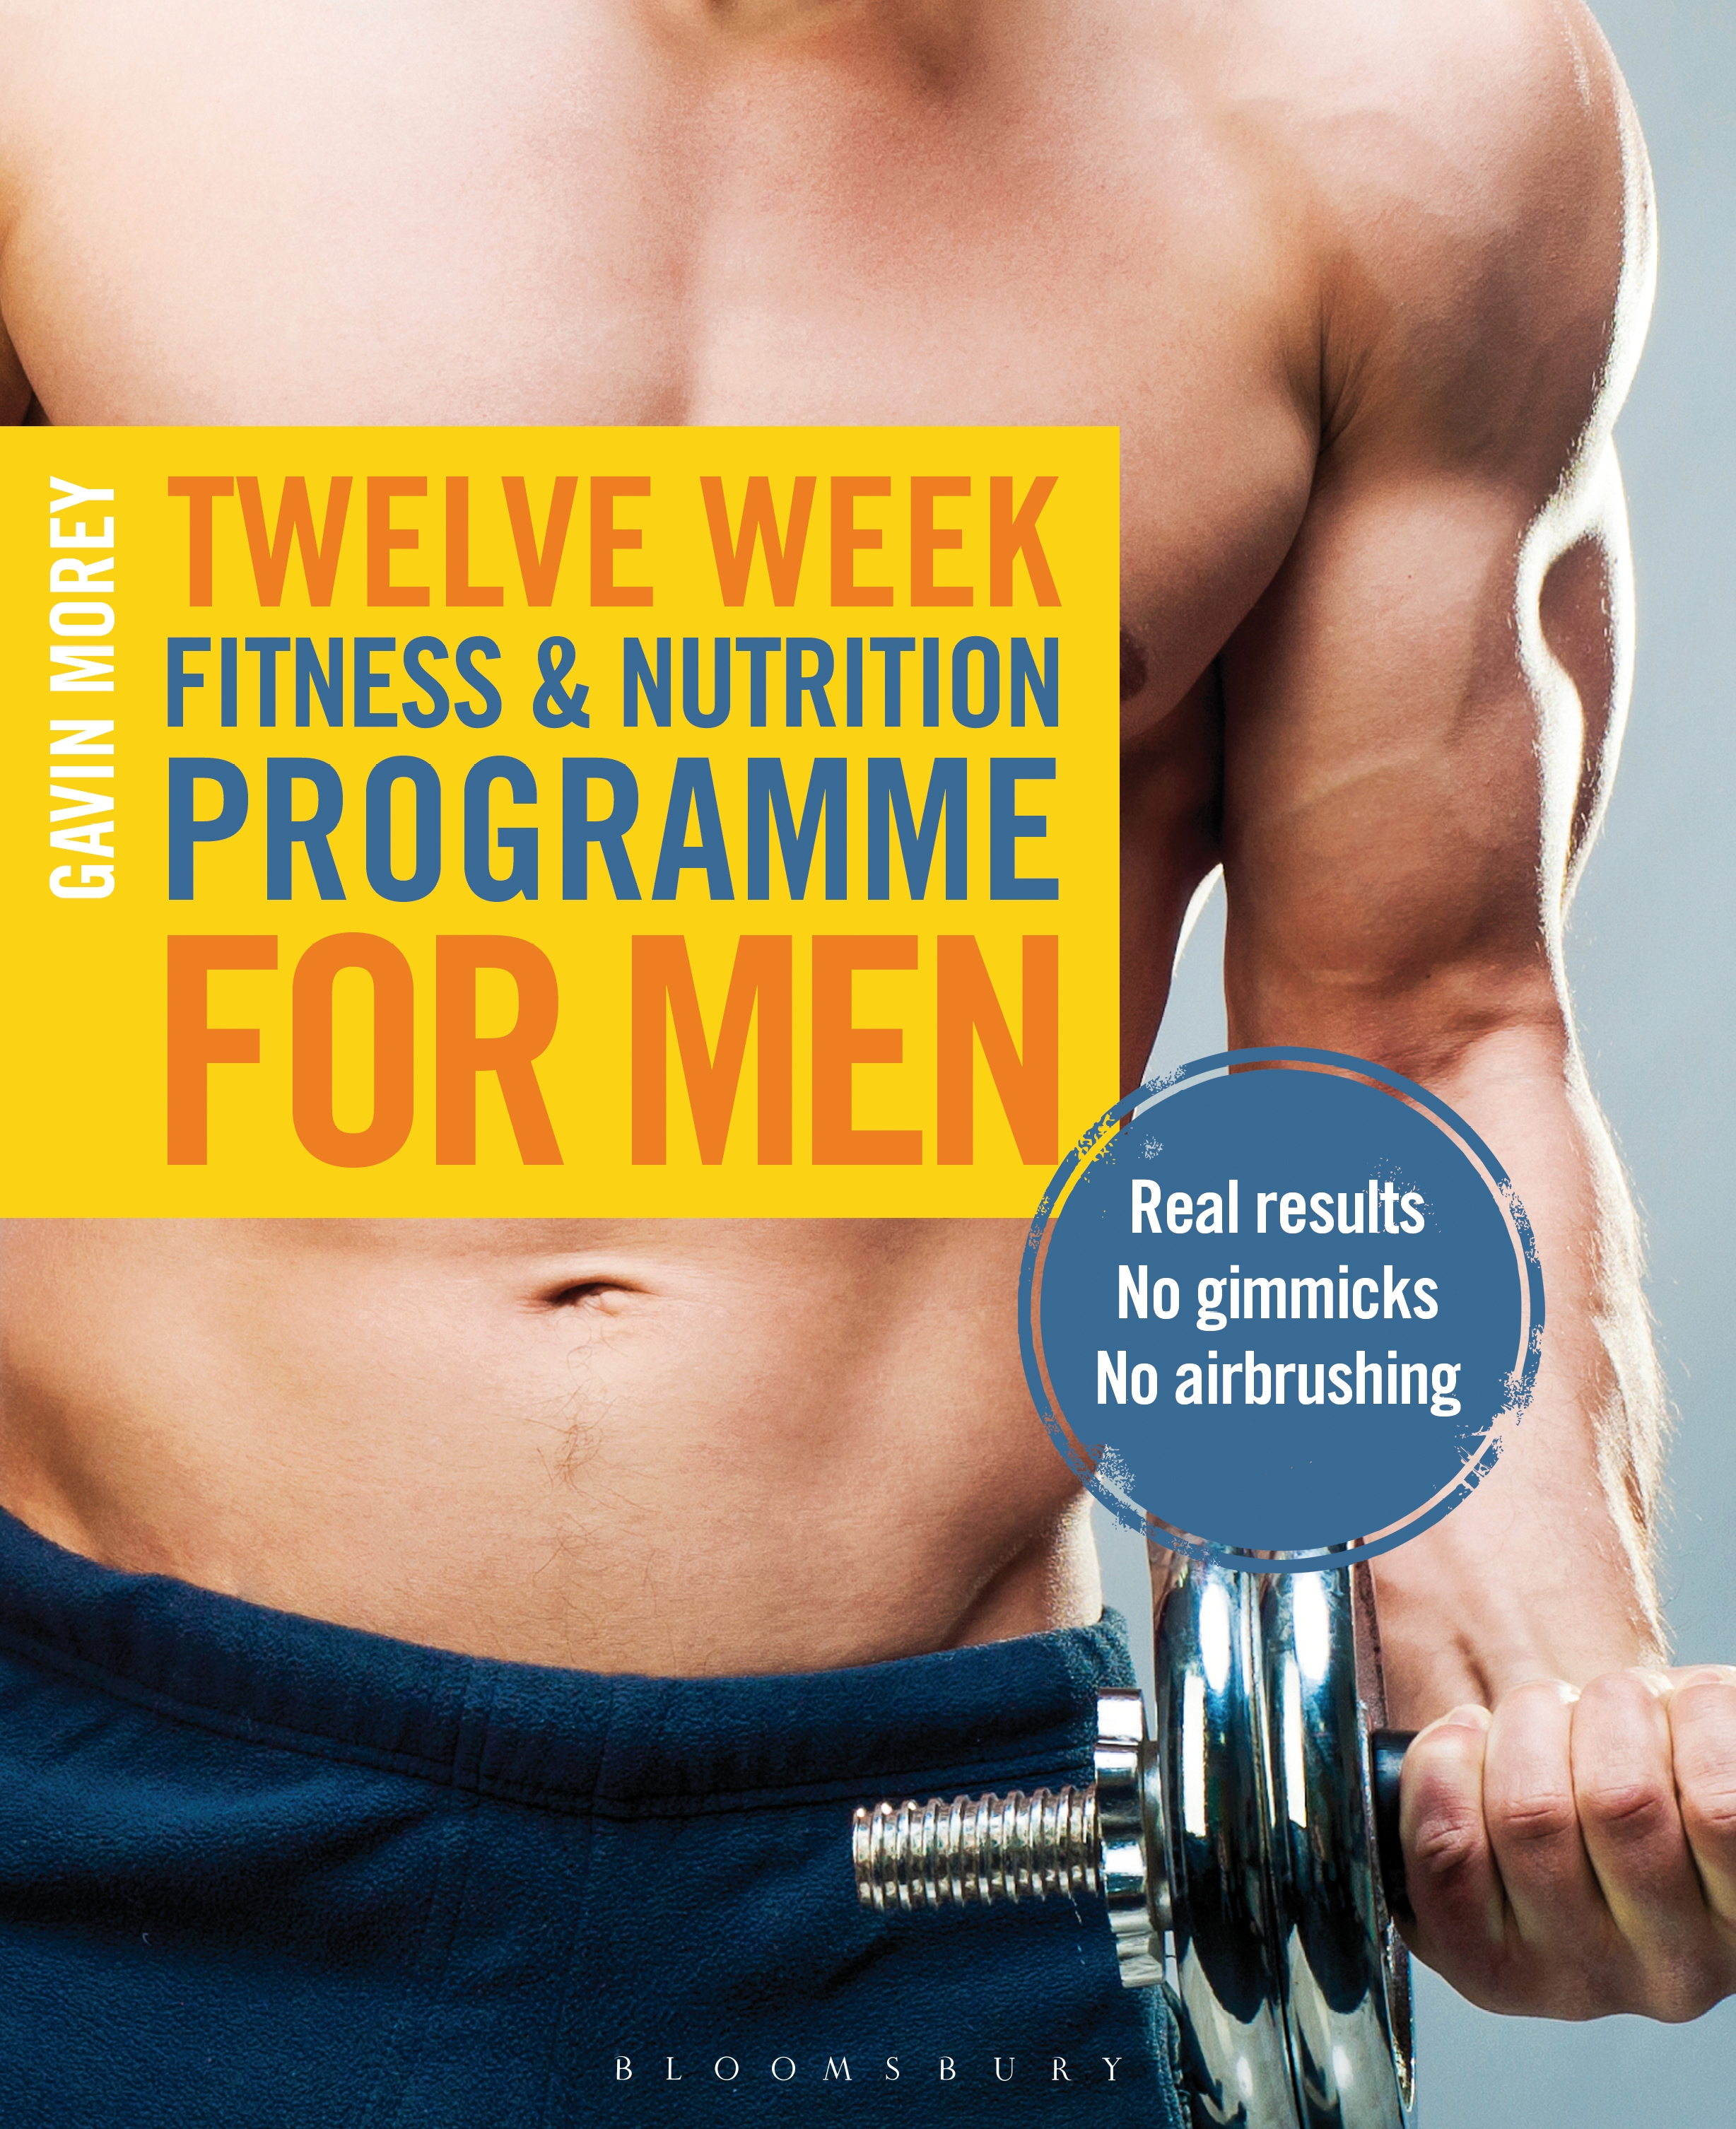 Twelve Week Fitness and Nutrition Programme for Men Real Results - No Gimmicks - No Airbrushing